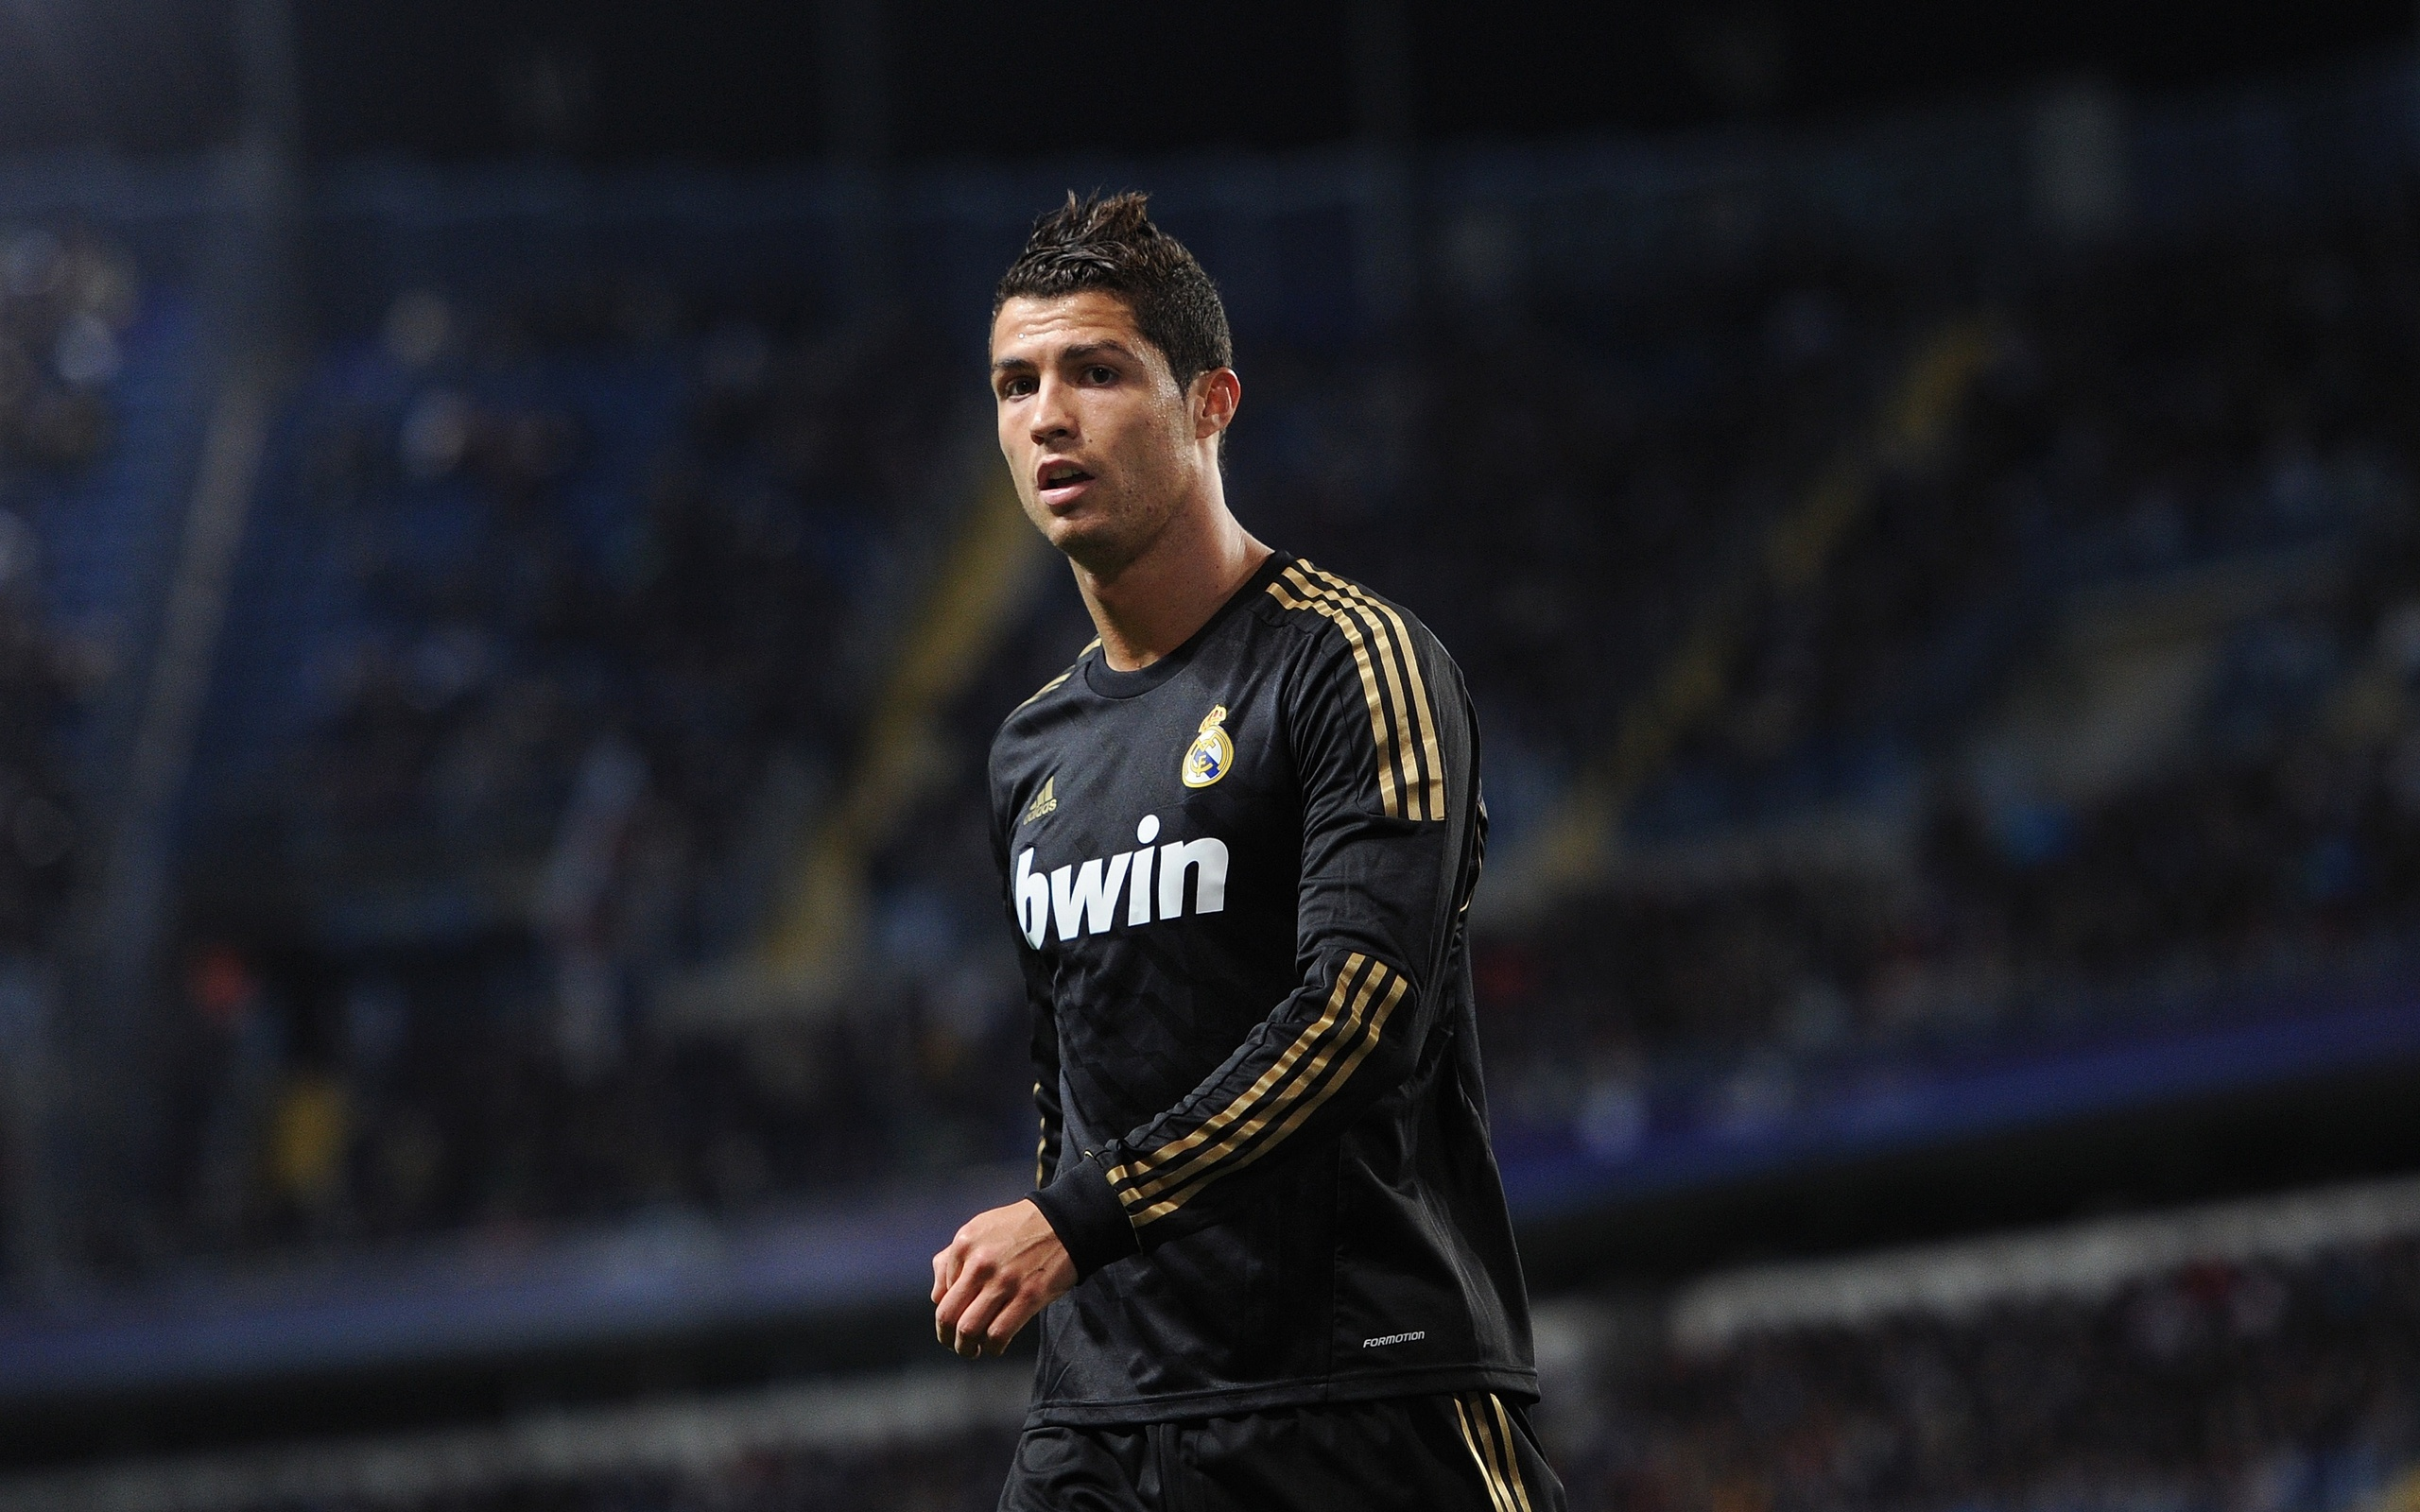 cristiano ronaldo new hd wallpapers 2015 - all hd wallpapers